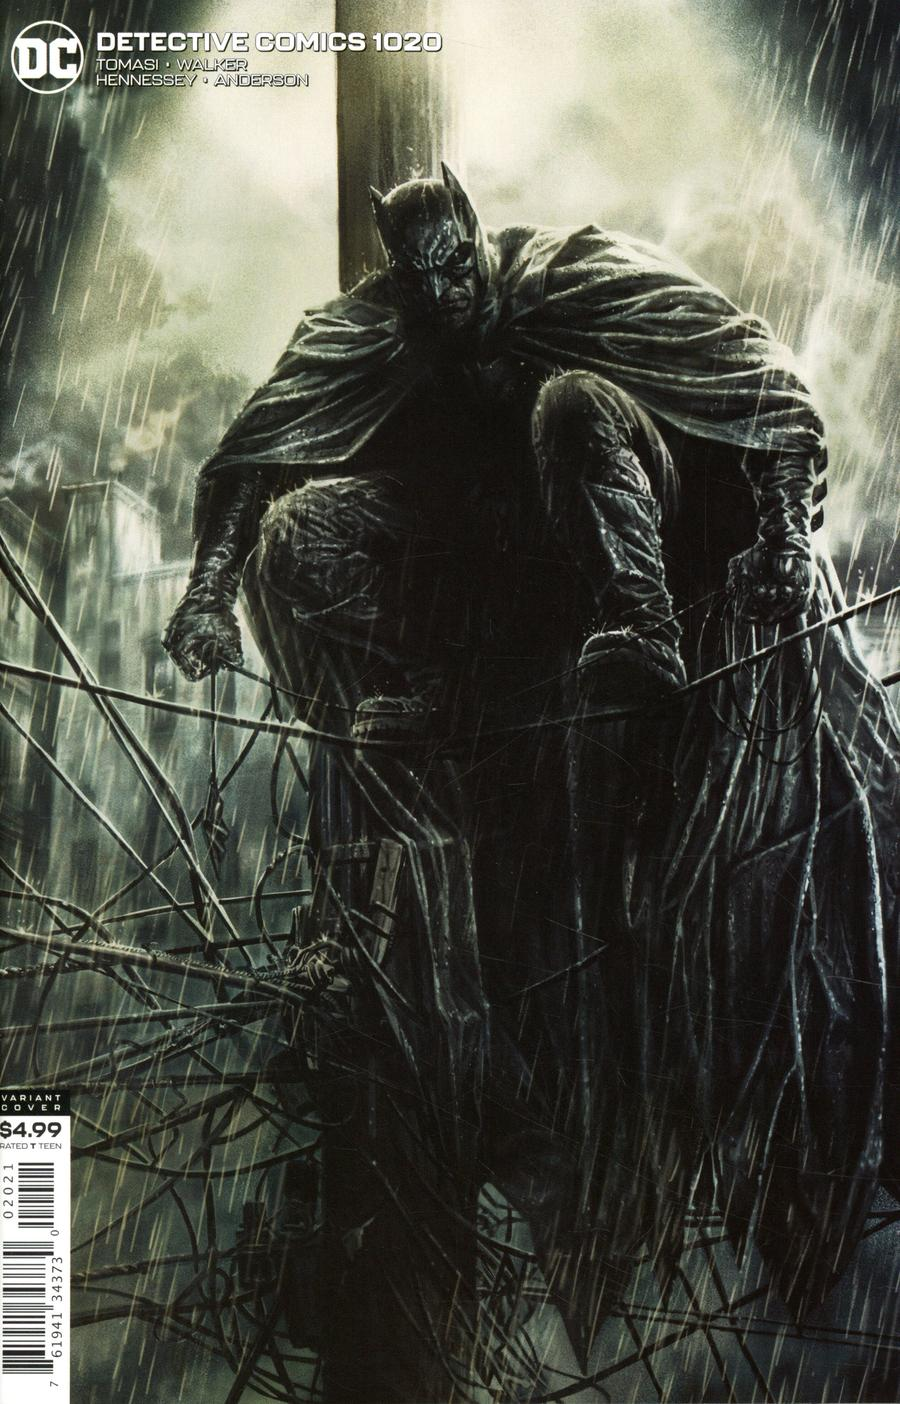 Detective Comics Vol 2 #1020 Cover B Variant Lee Bermejo Card Stock Cover